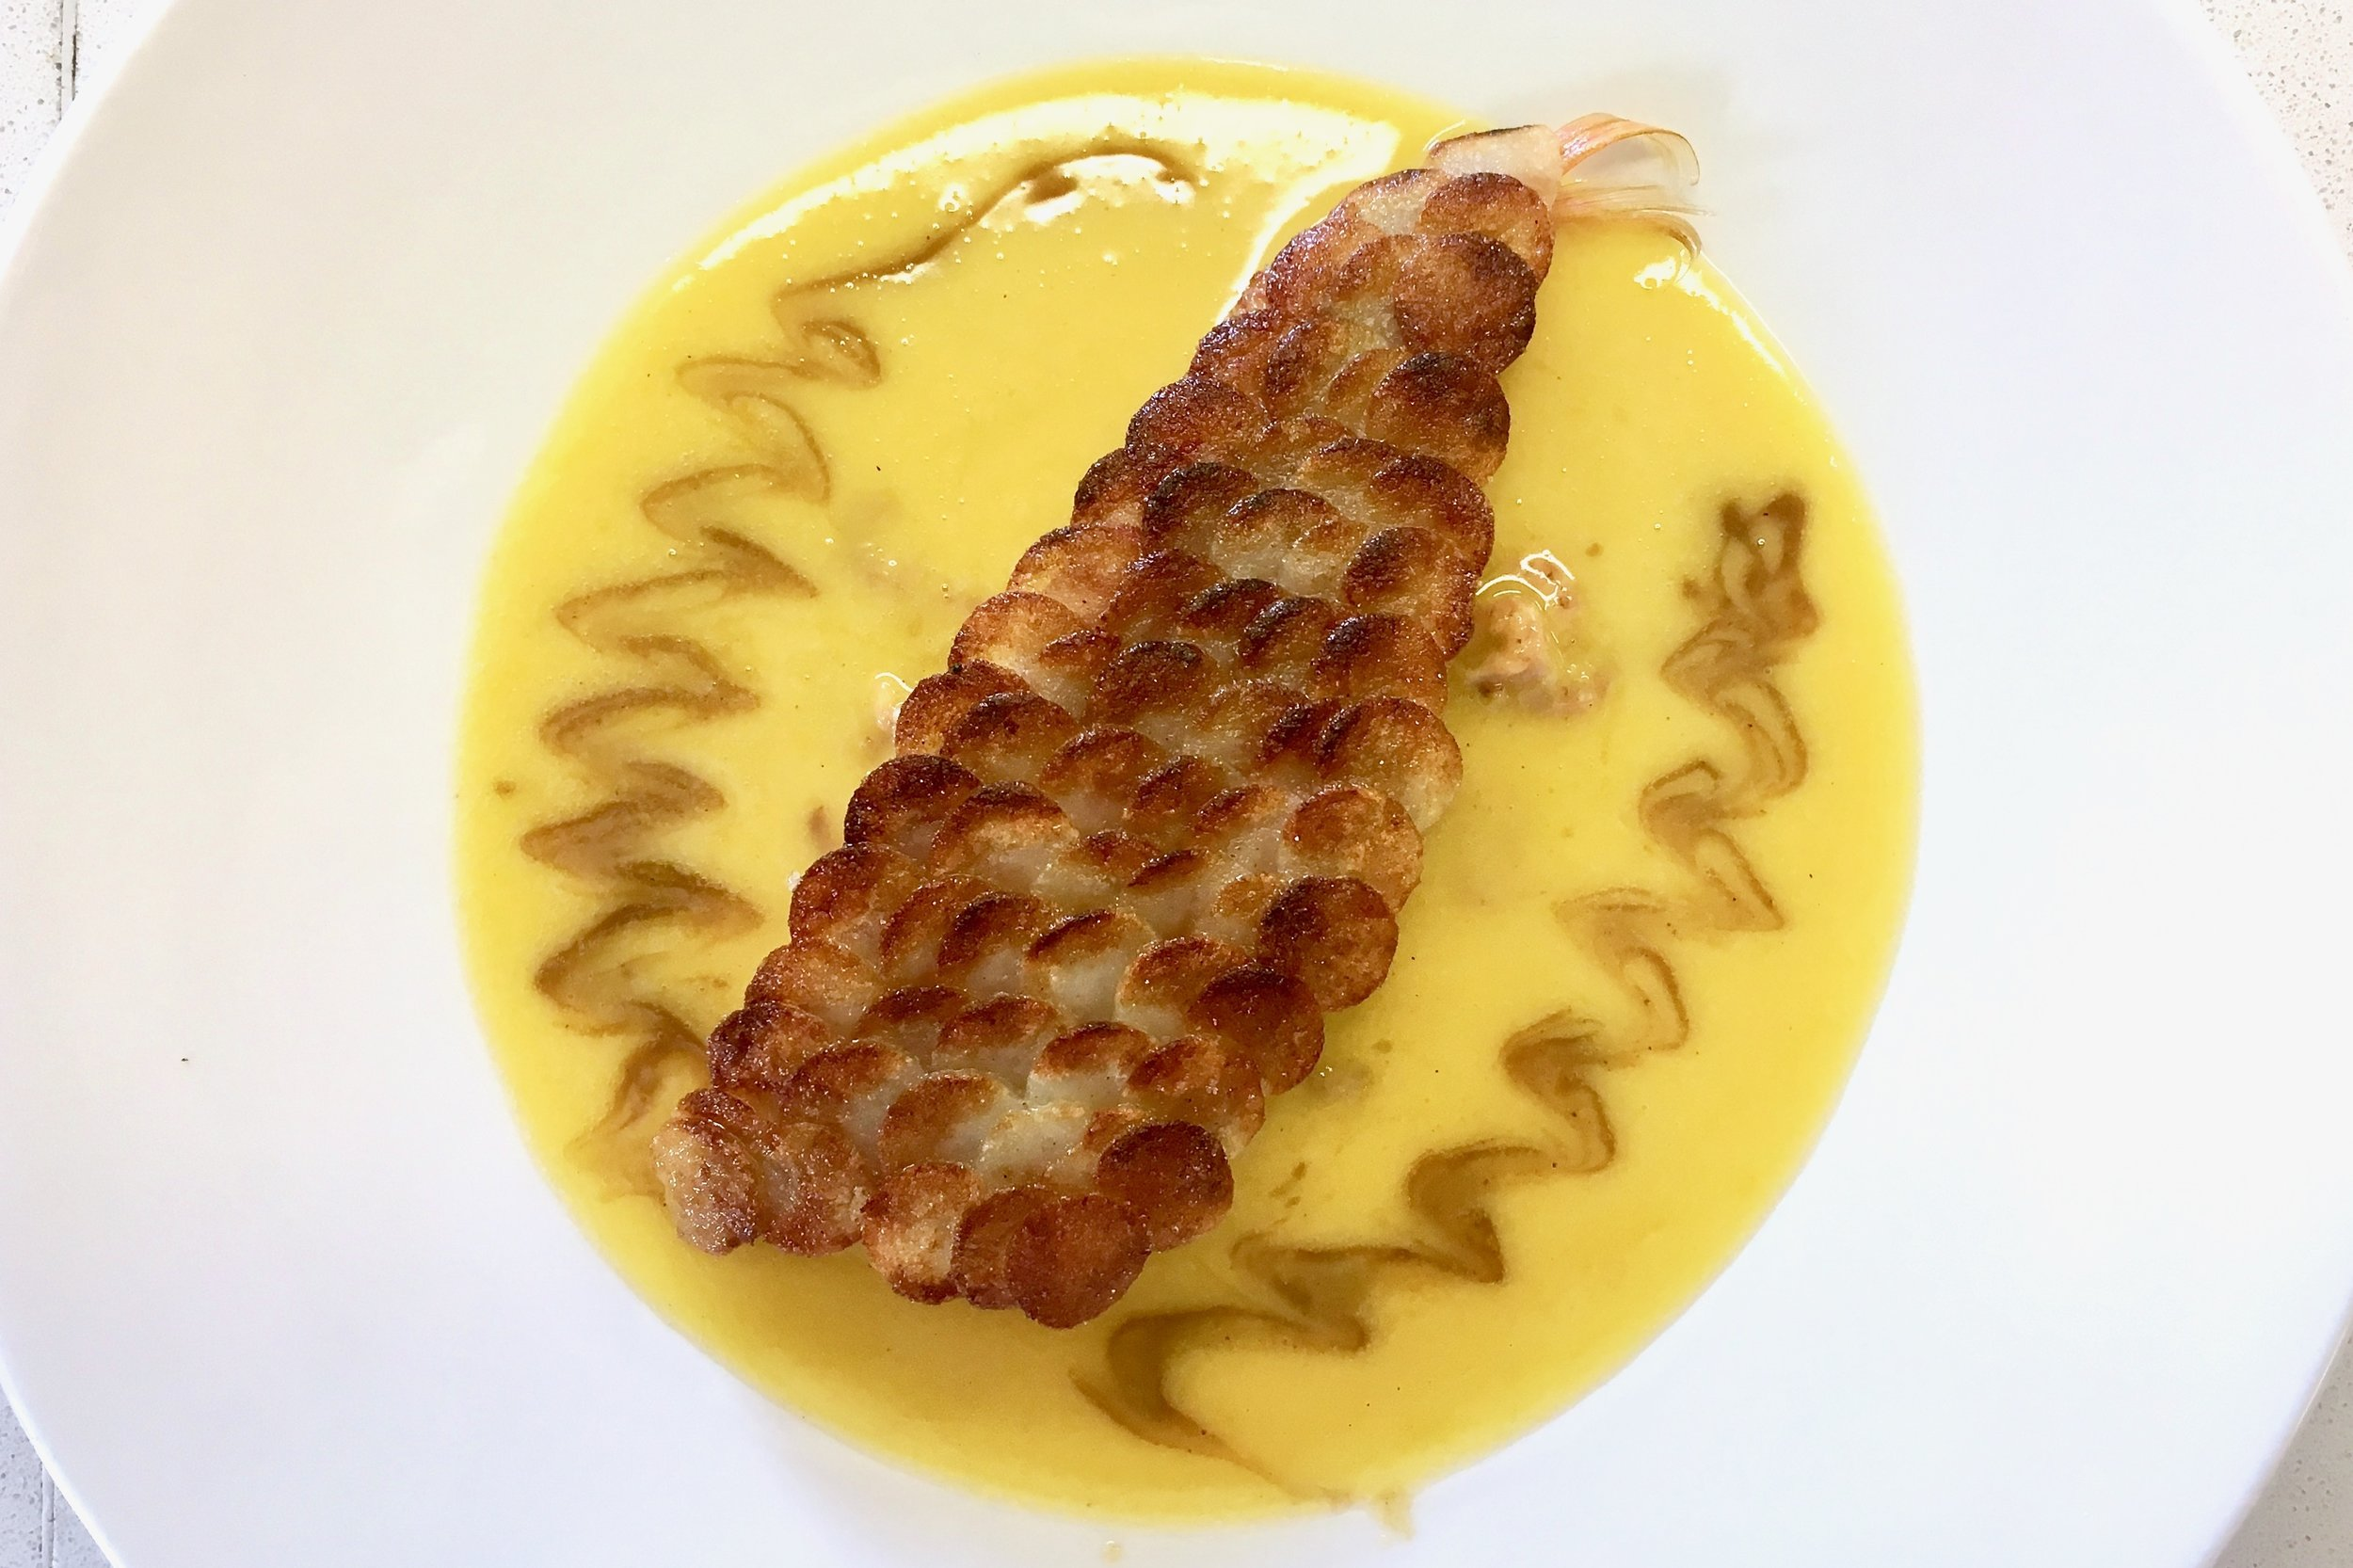 Chef's approximation of the famous Paul Bocuse dish, made with a brown fish sauce